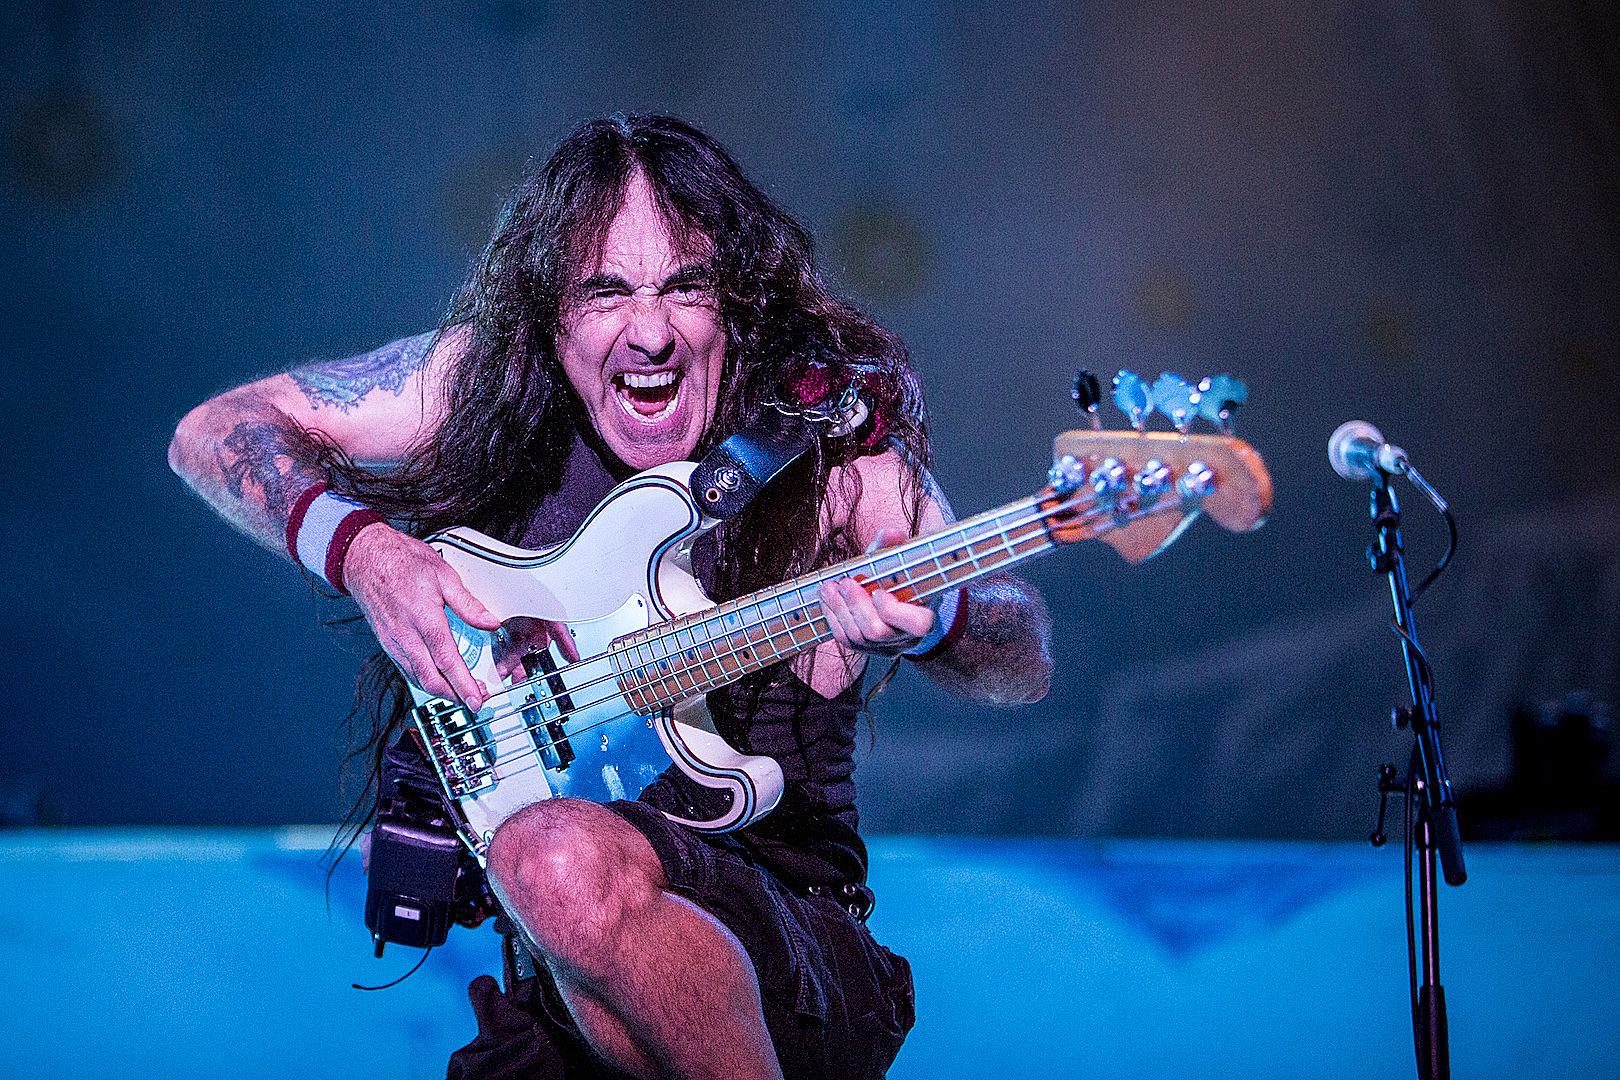 Steve Harris (Iron Maiden, British Lion): Why I Decided to Play Bass